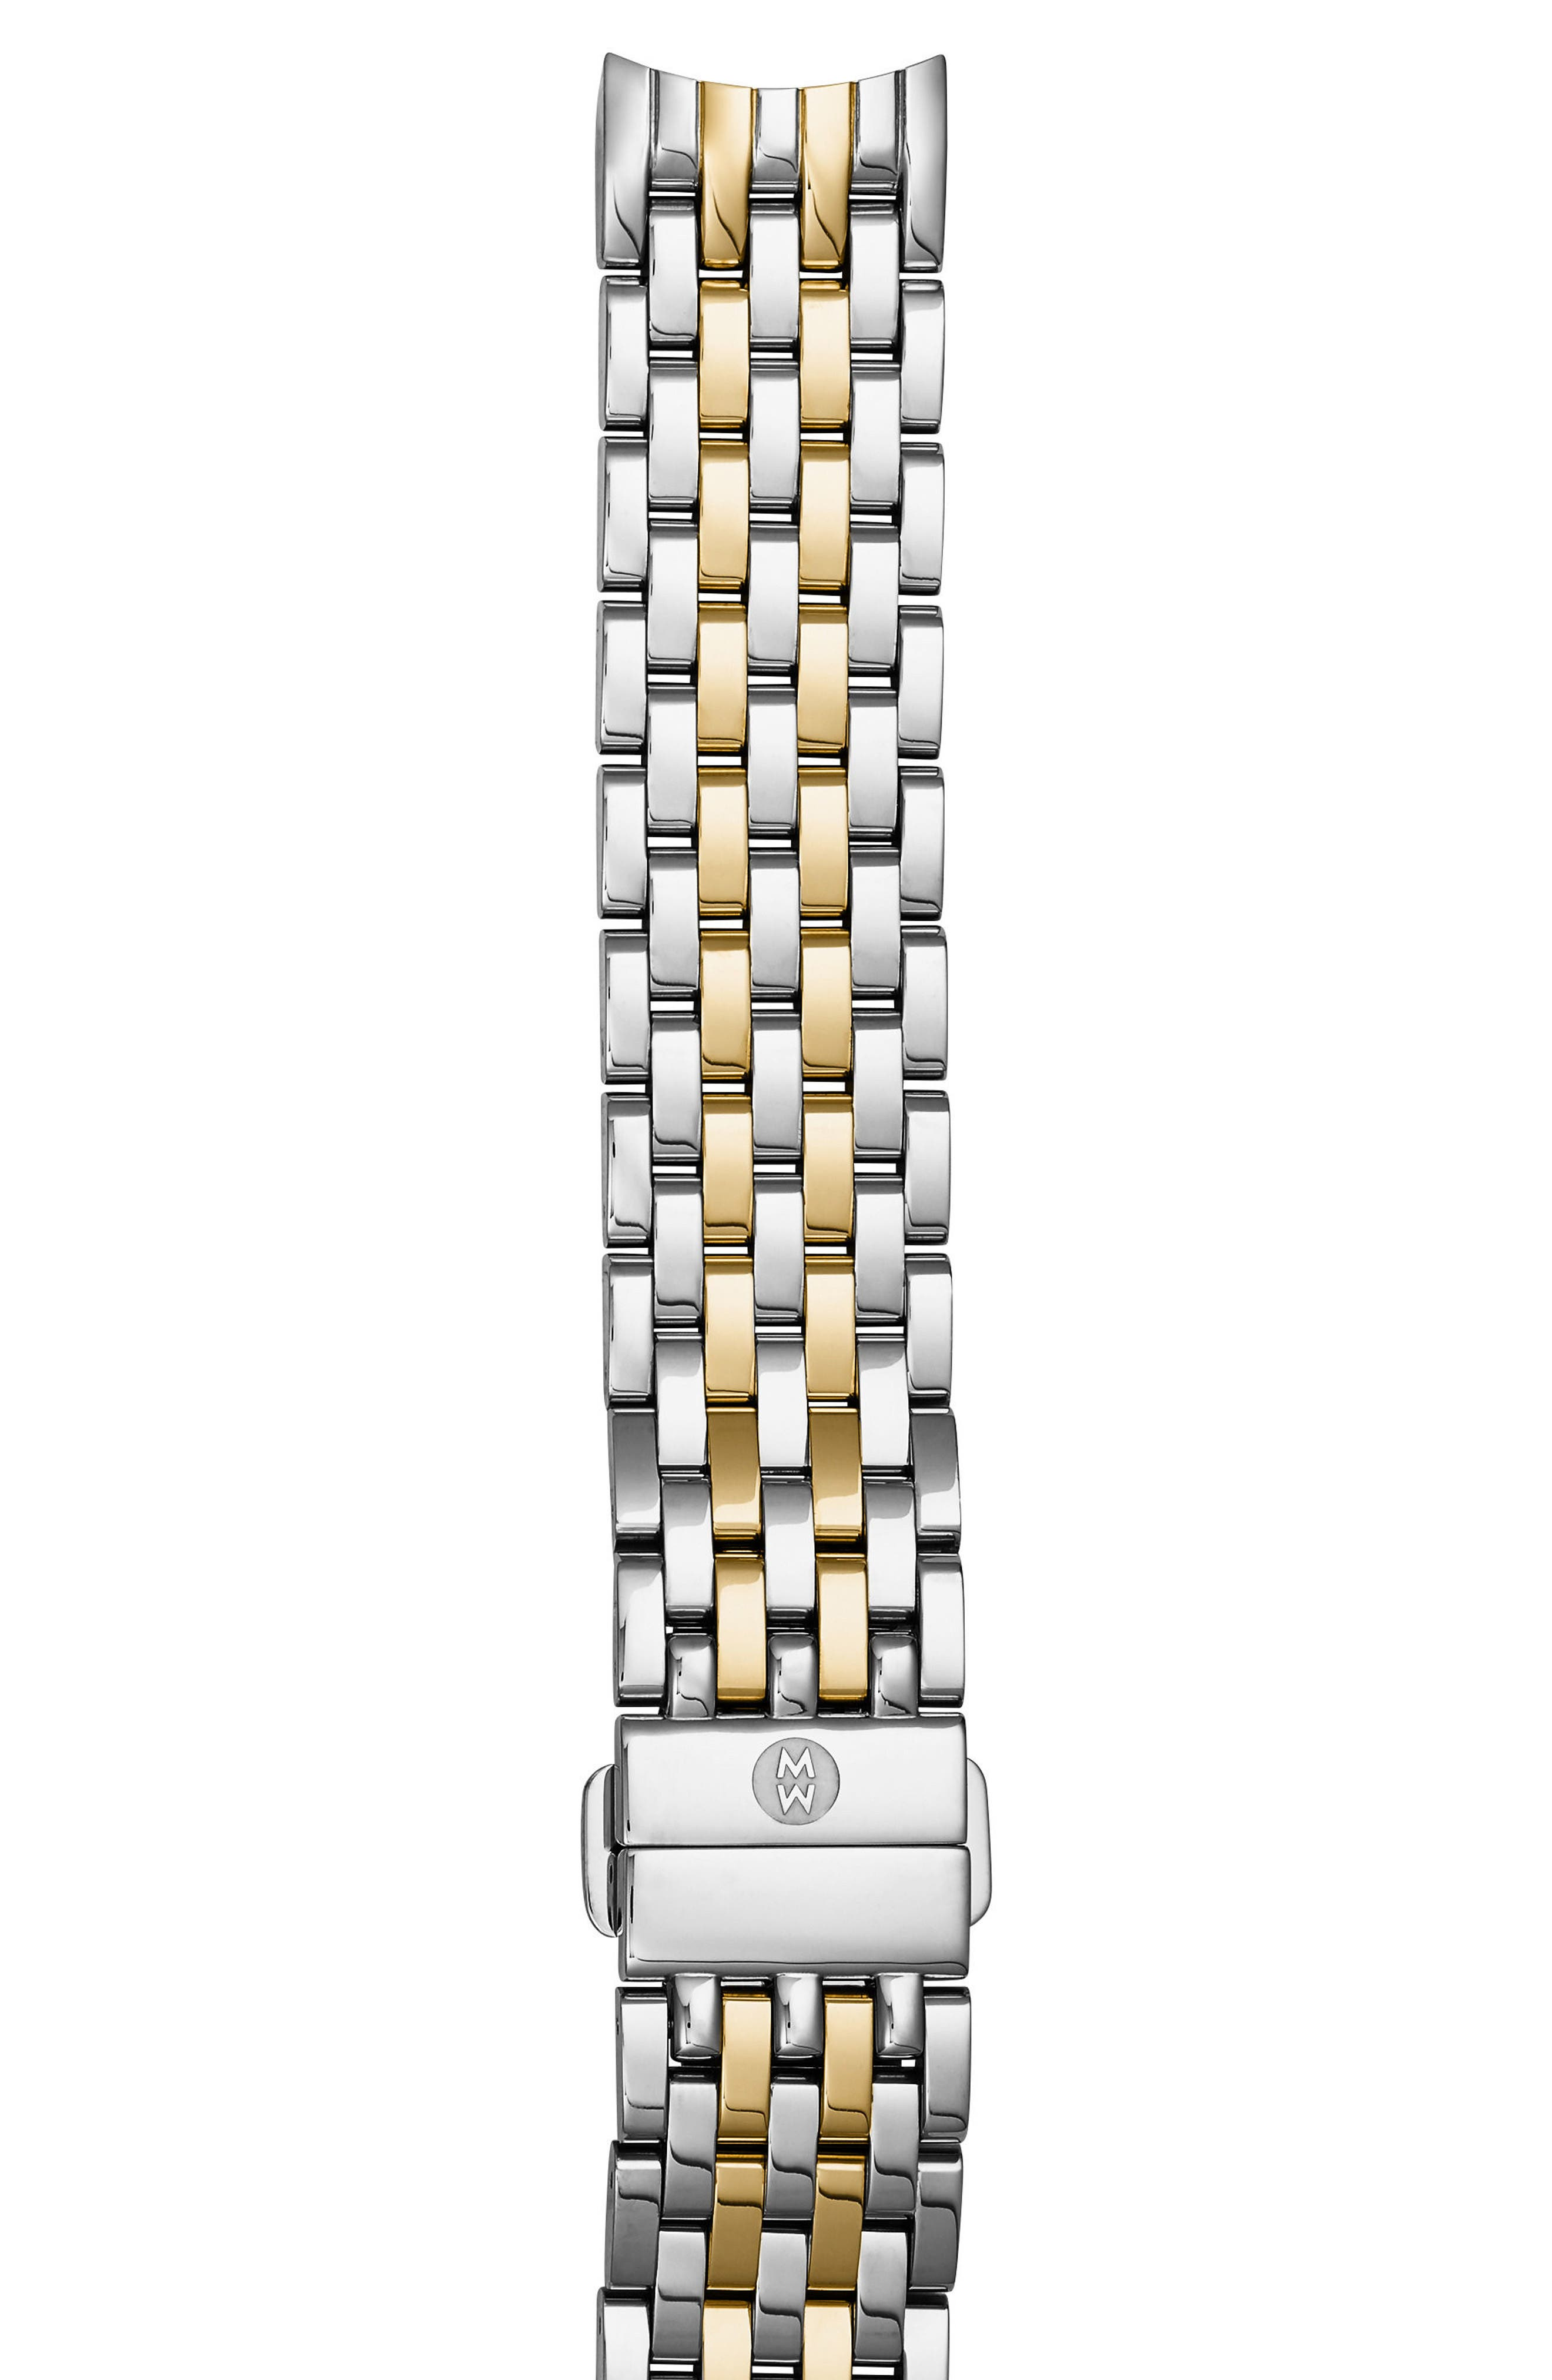 Sidney 18mm Stainless Steel Bracelet Watch Band,                             Main thumbnail 1, color,                             Silver/ Gold